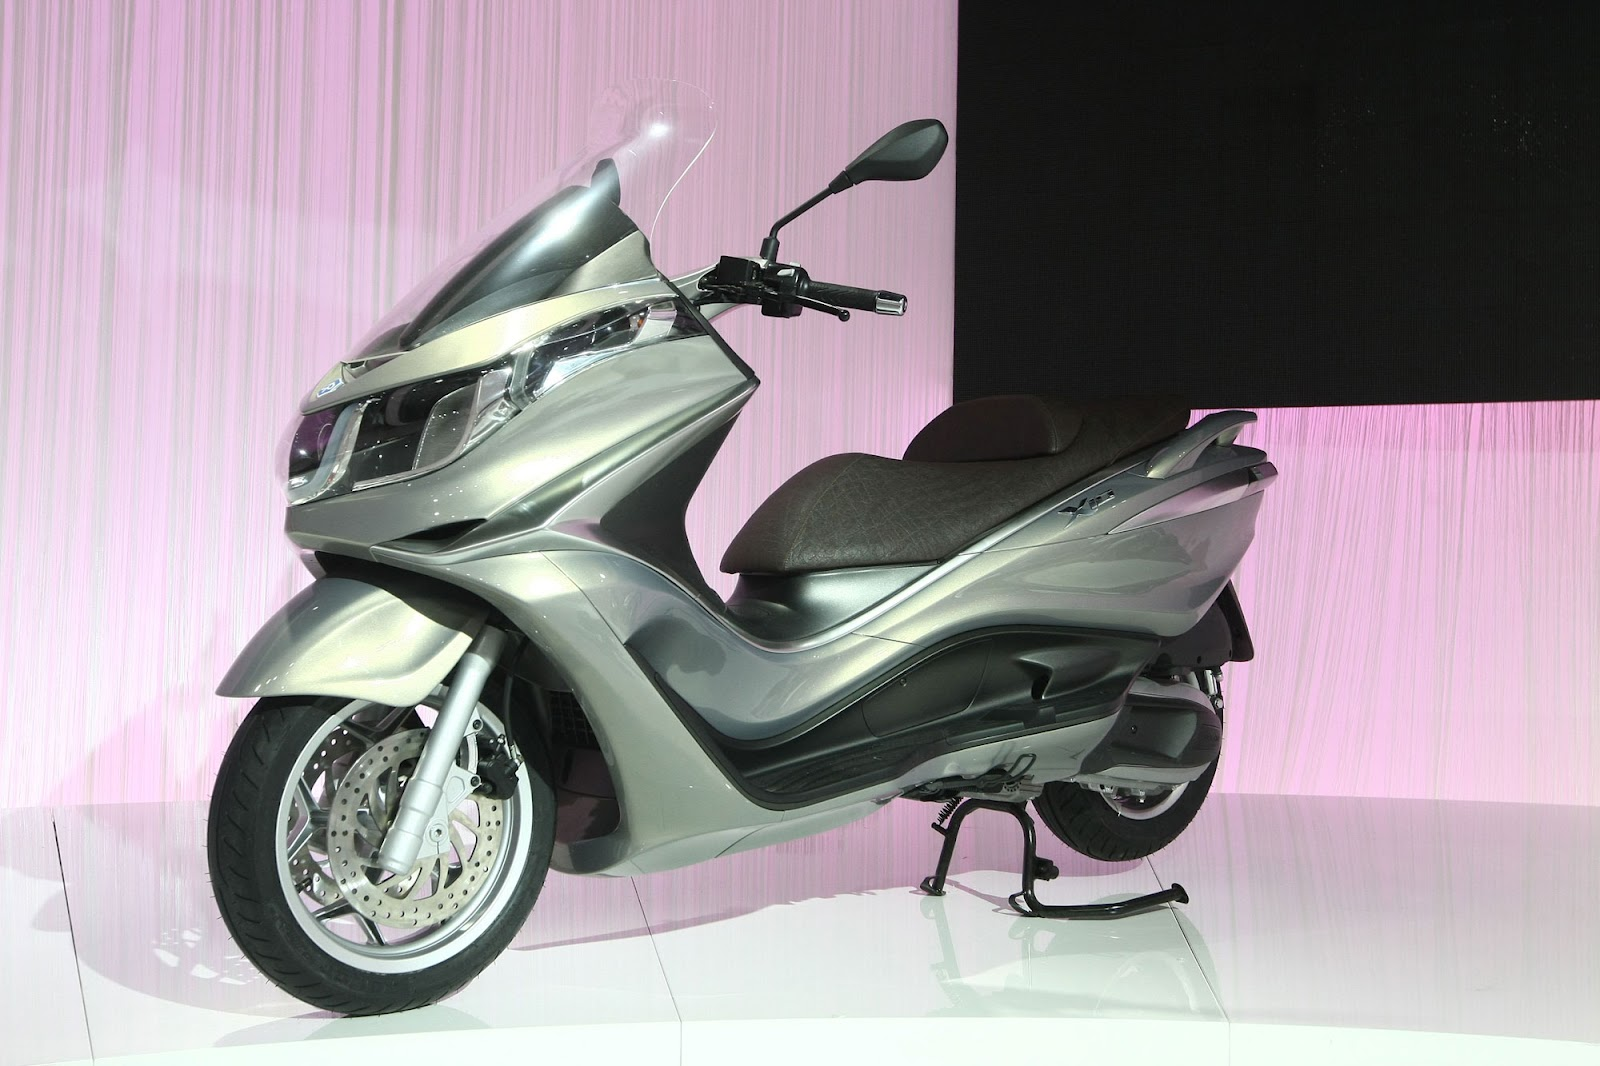 2012 piaggio x10 500 review motorcycle news. Black Bedroom Furniture Sets. Home Design Ideas